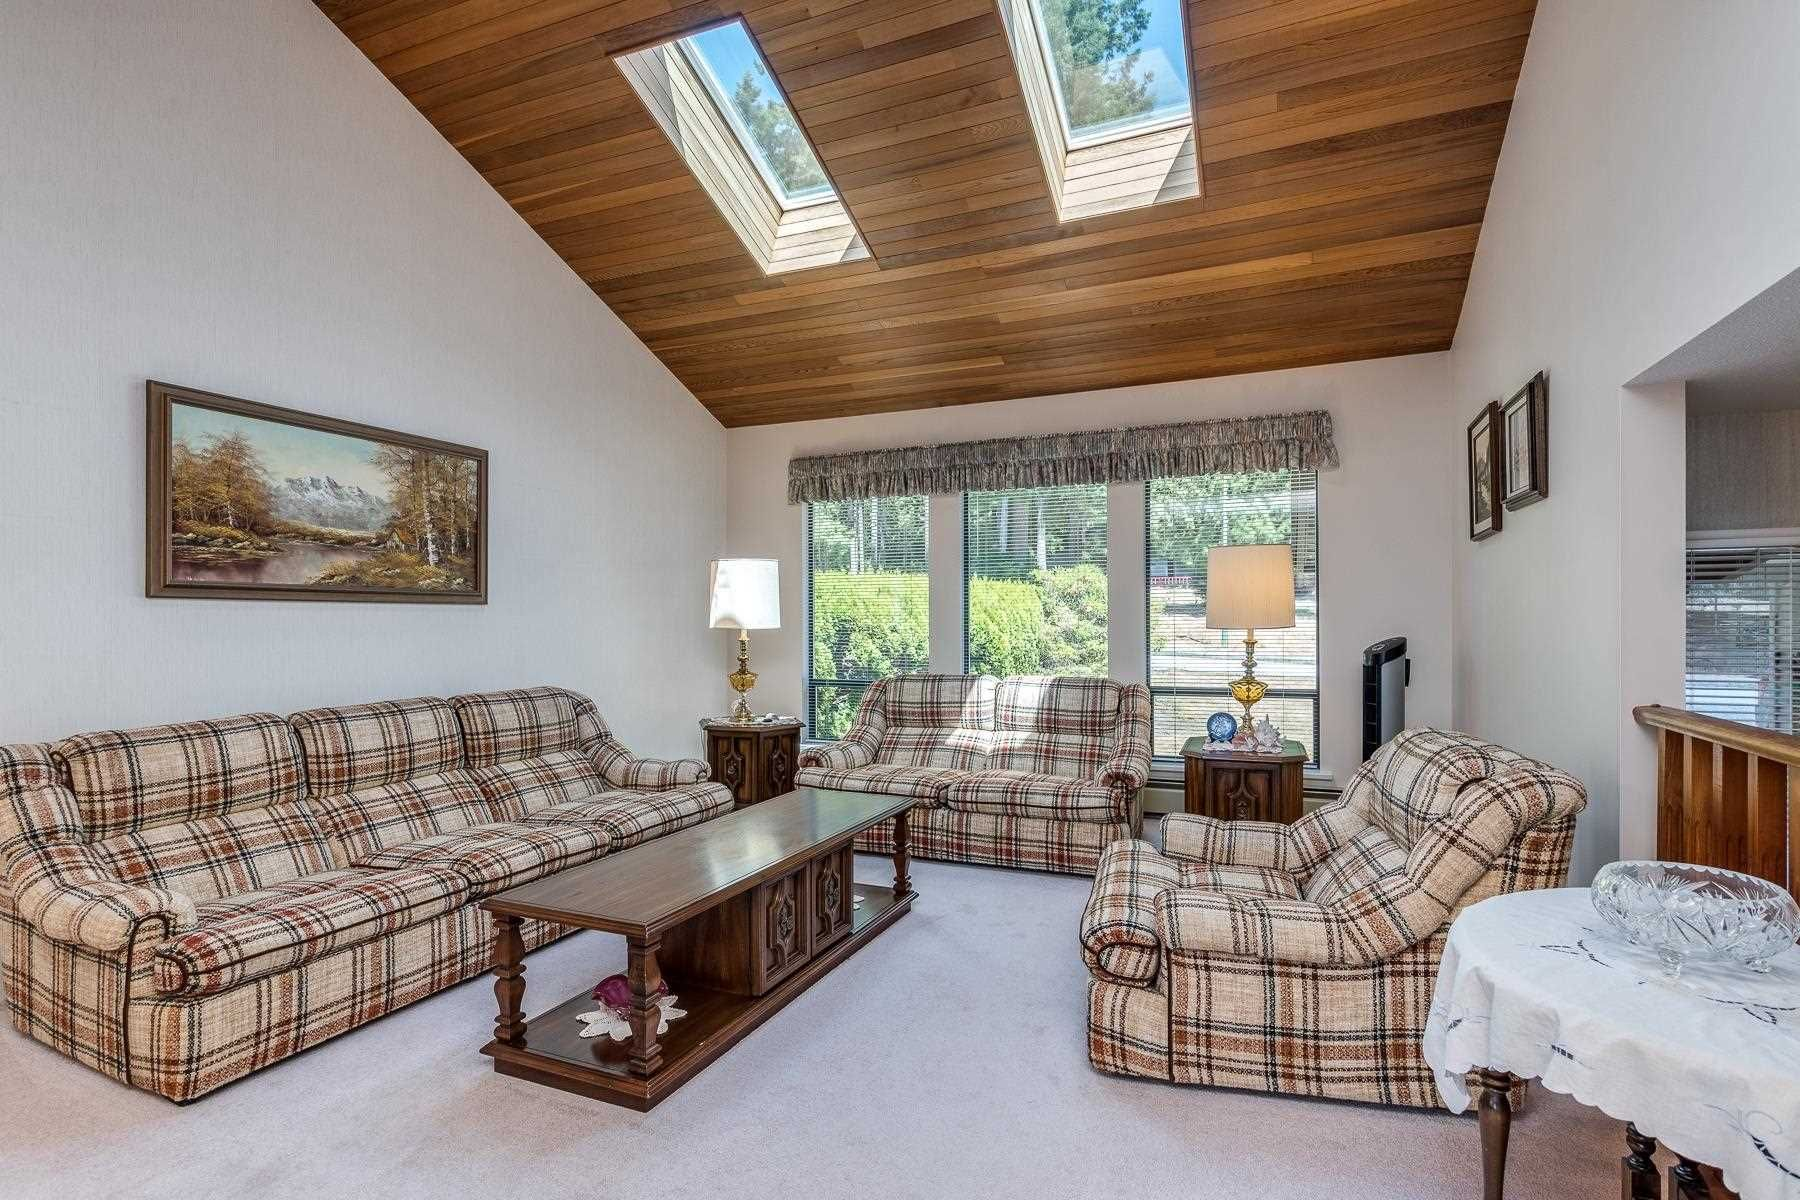 """Photo 6: Photos: 378 BALFOUR Drive in Coquitlam: Coquitlam East House for sale in """"DARTMOOR HEIGHTS"""" : MLS®# R2600428"""